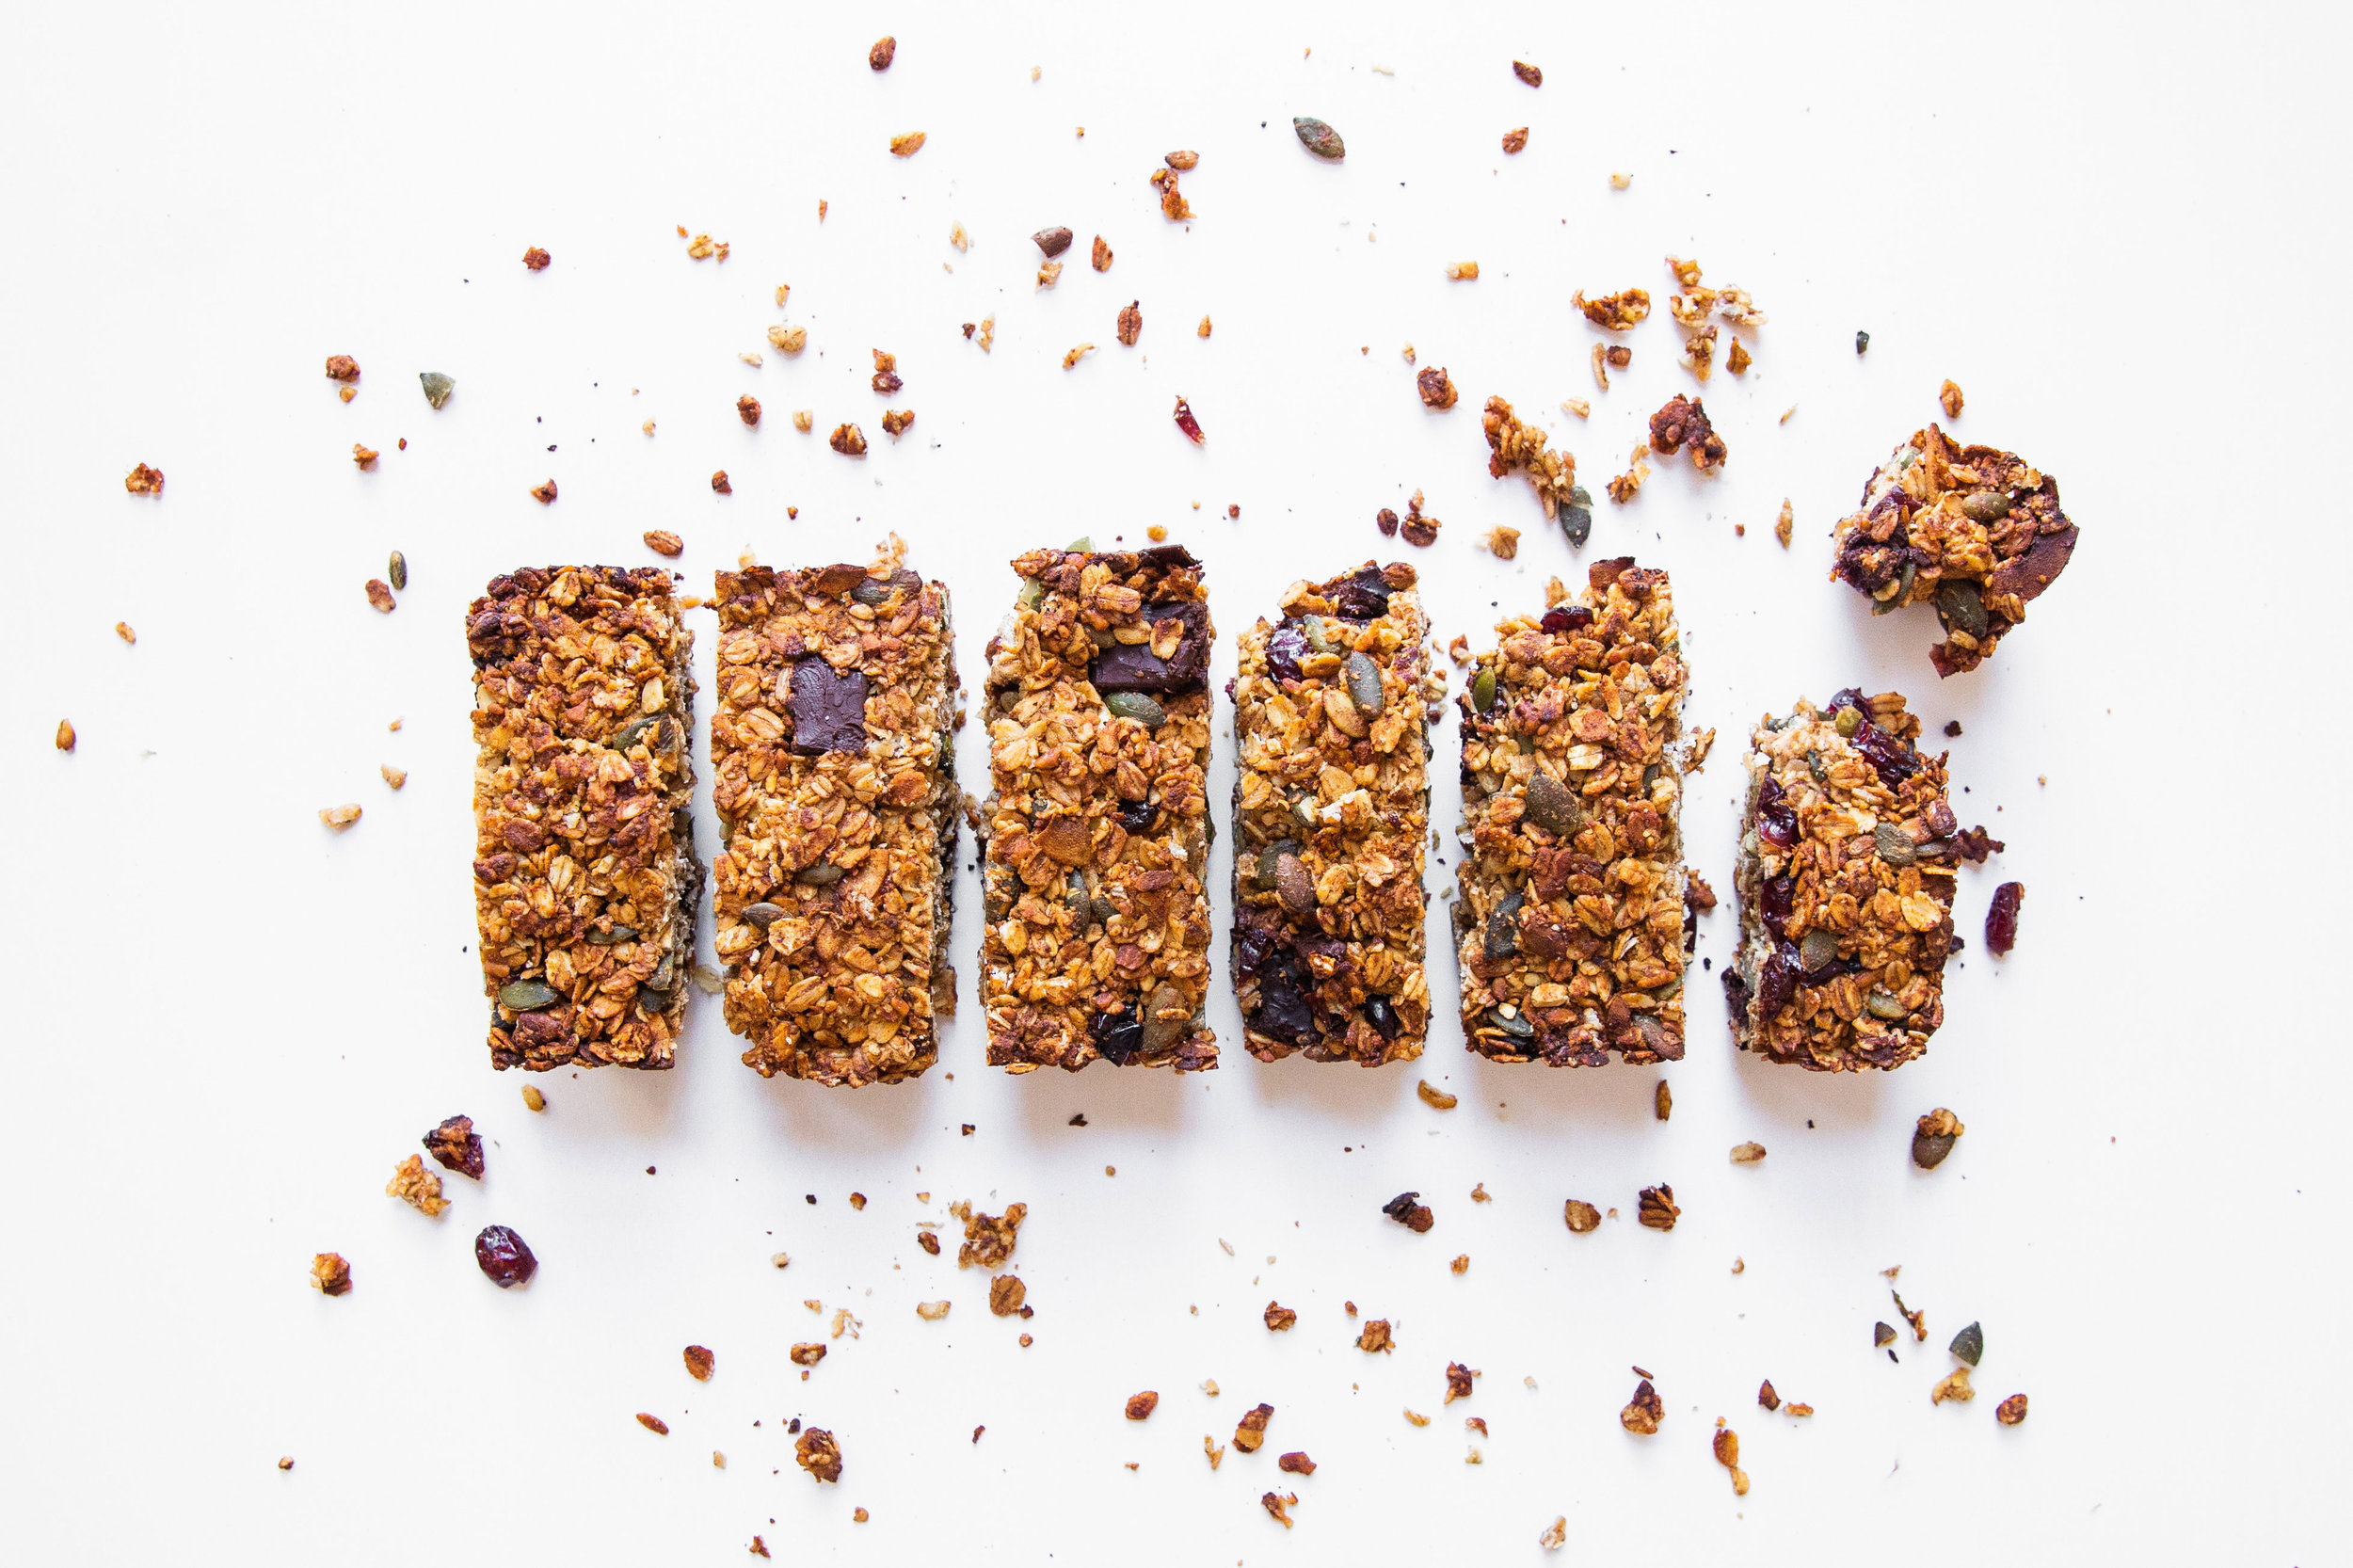 Spoon-tour-de-france-granola-bars-3.jpg